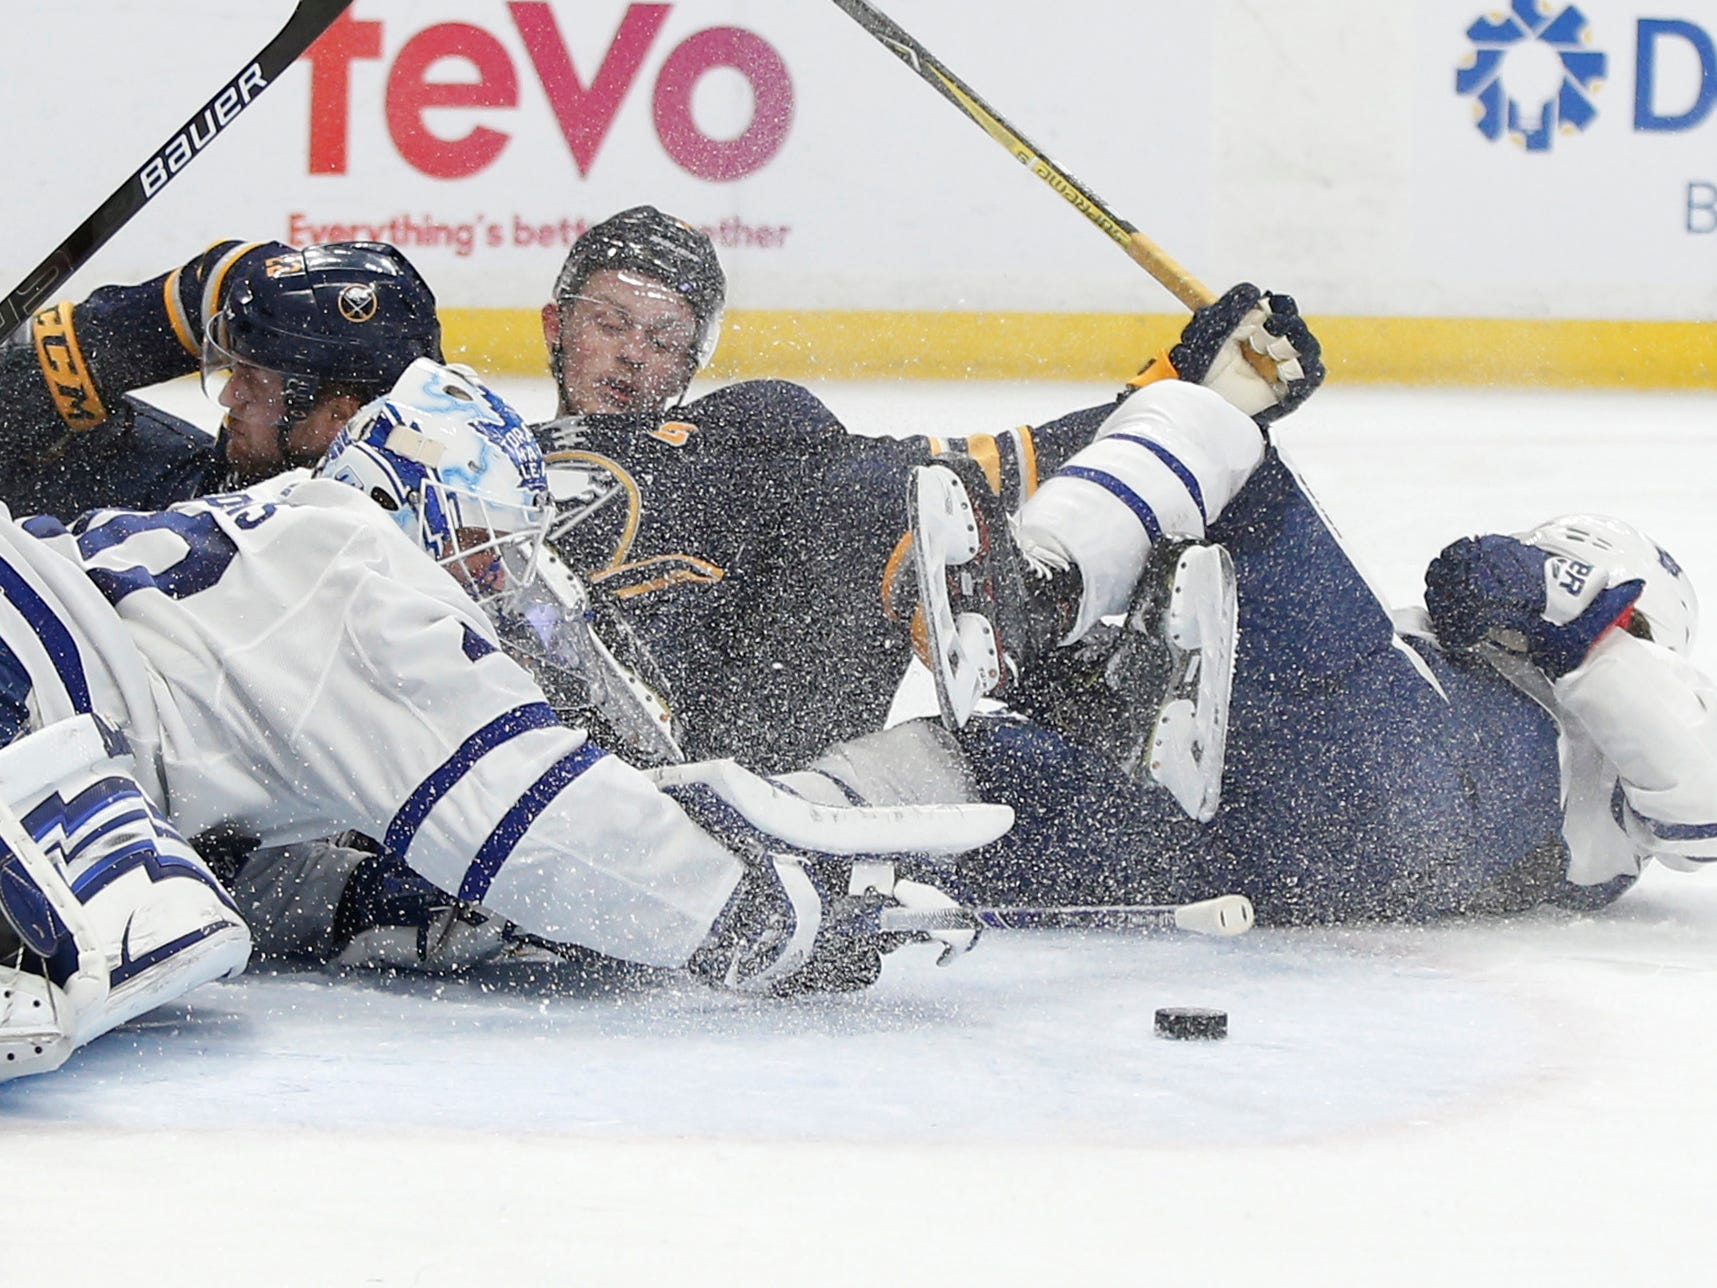 March 20: Toronto Maple Leafs goaltender Garret Sparks makes a save during a second-period goal-mouth scramble against the Buffalo Sabres.